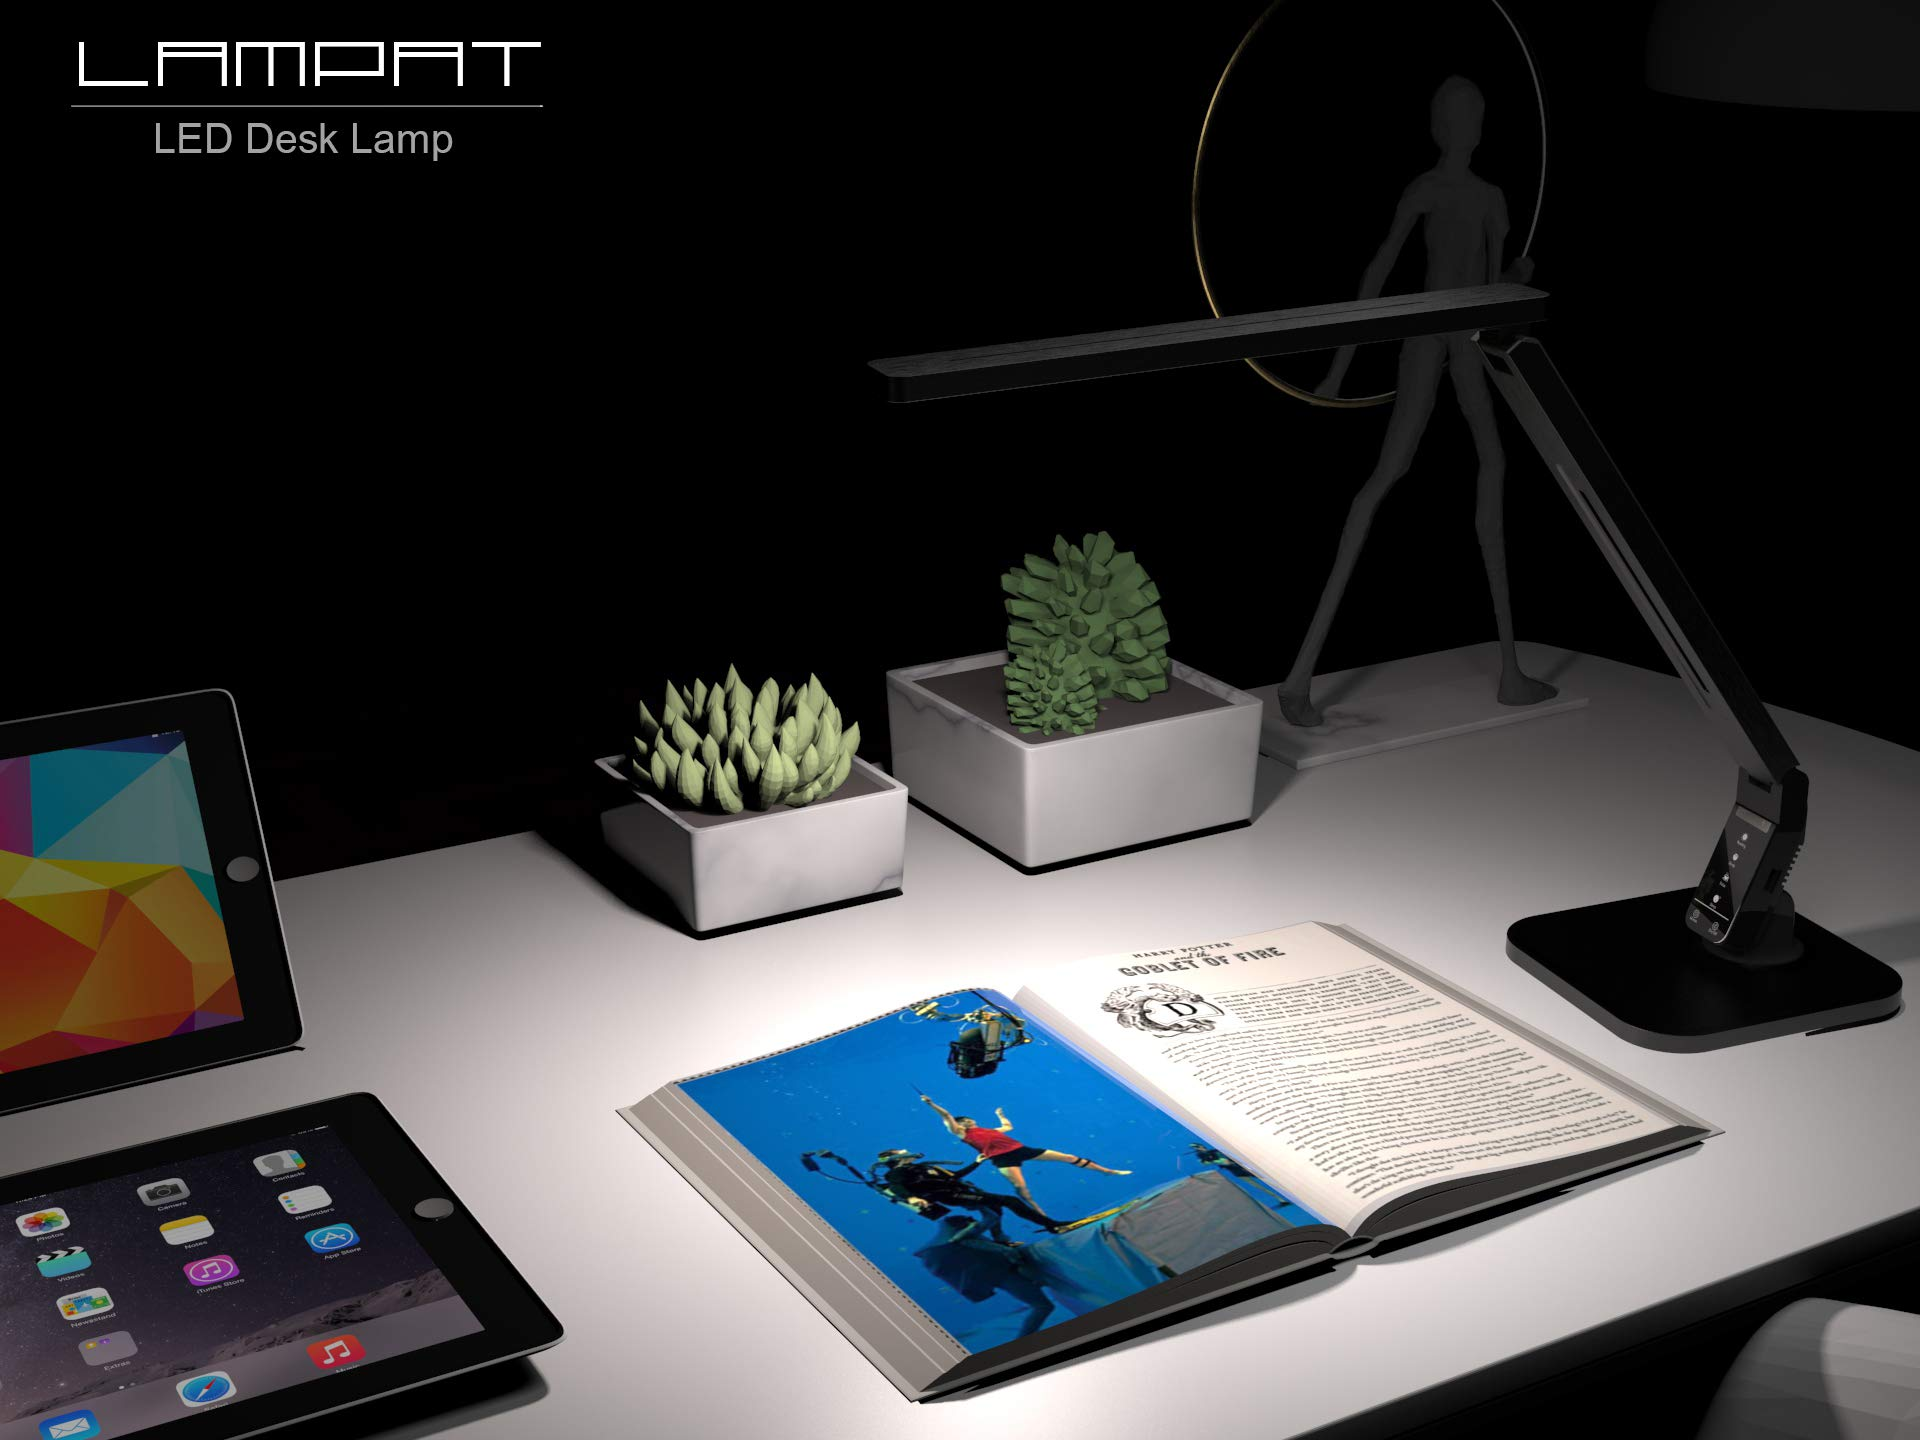 Lampat LED Desk Lamp, Dimmable LED Table Lamp Black, 4 Lighting Modes, 5-Level Dimmer, Touch-Sensitive Control Panel, 1-Hour Auto Timer, 5V/2A USB Charging Port) by LAMPAT (Image #7)